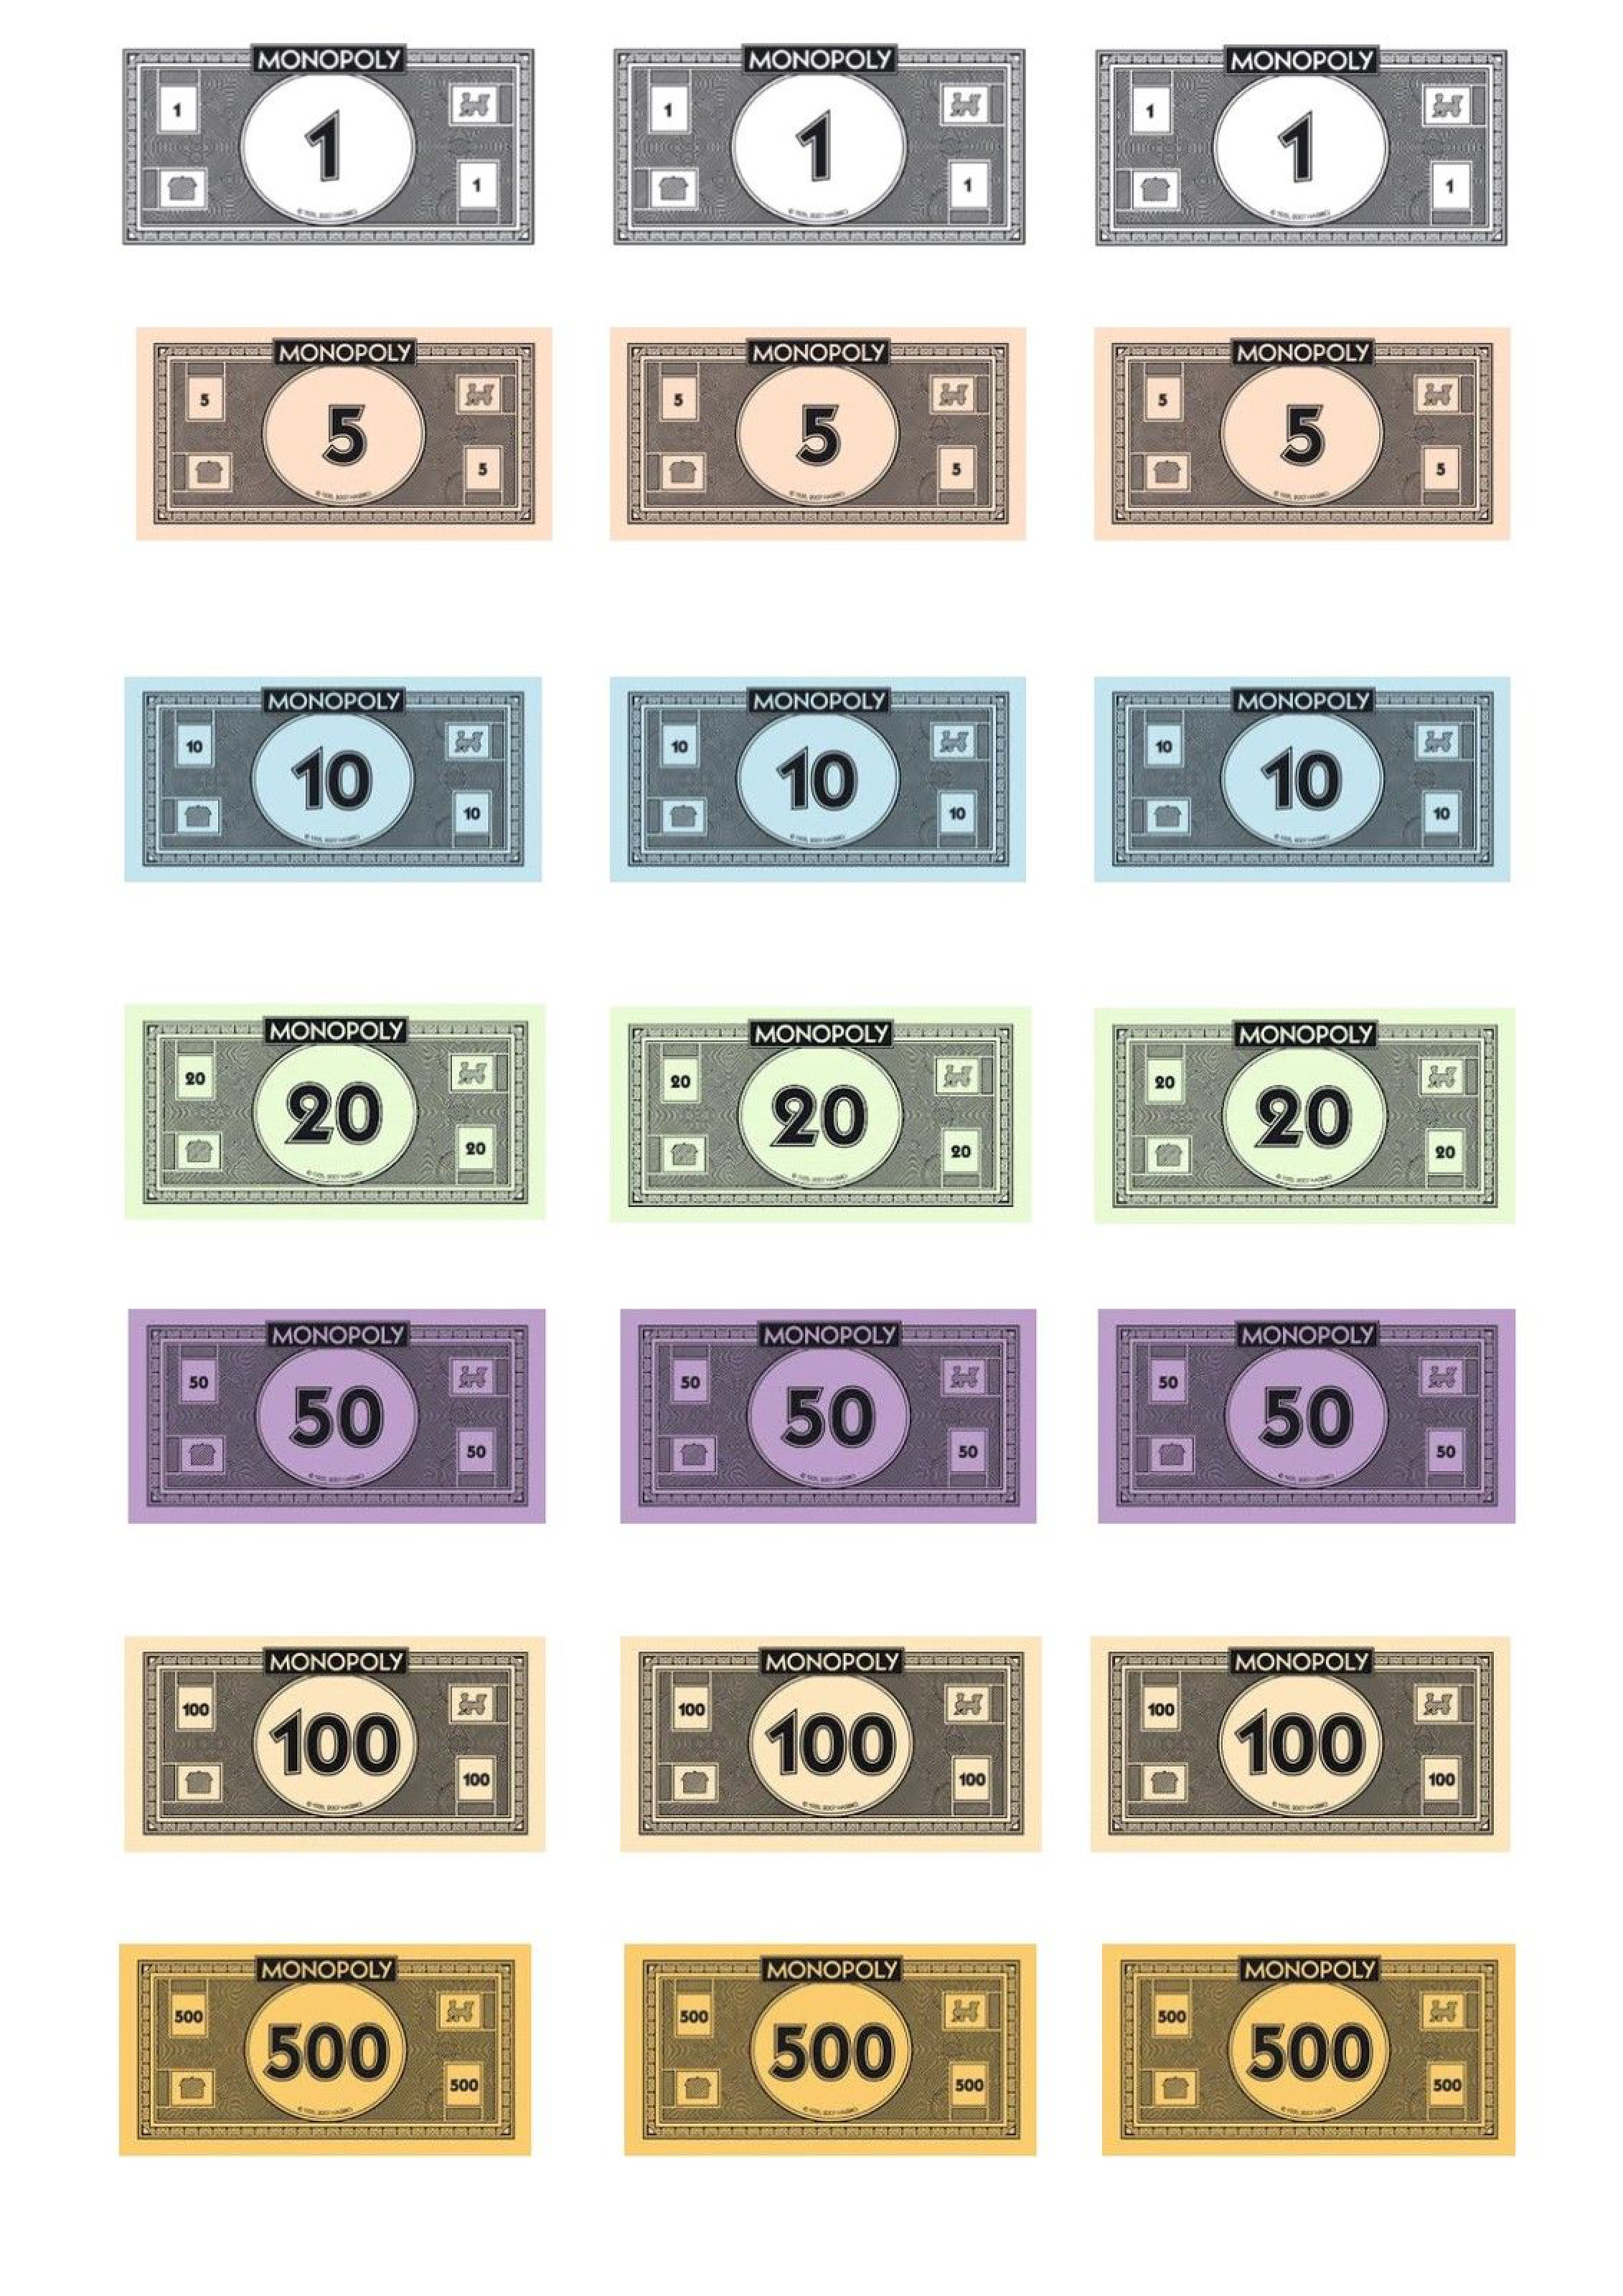 Free Monopoly Money Template